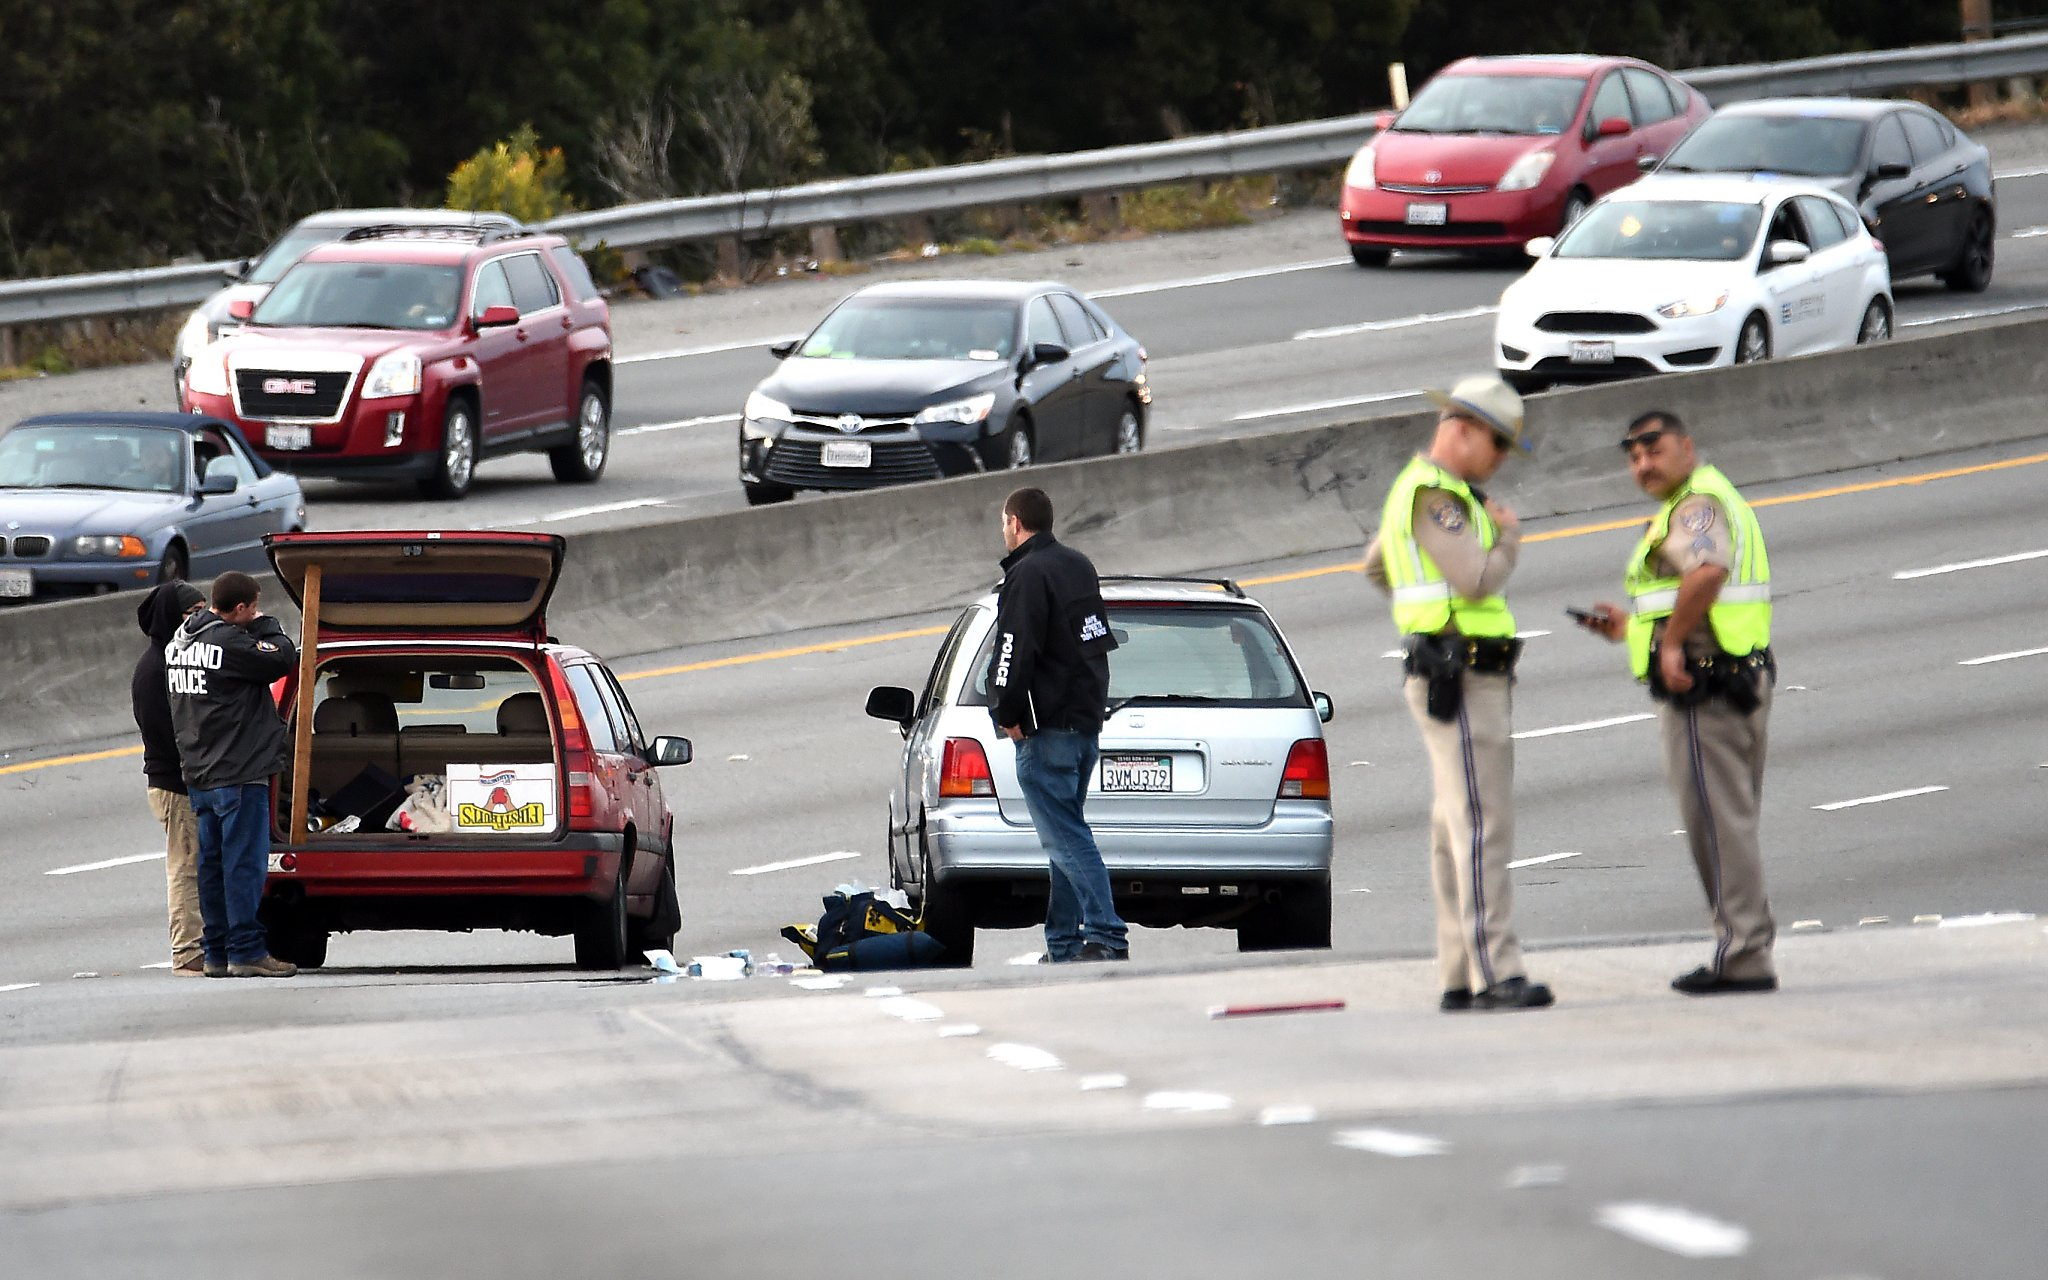 Shooting wounds 2, closes eastbound I-80 for hours in